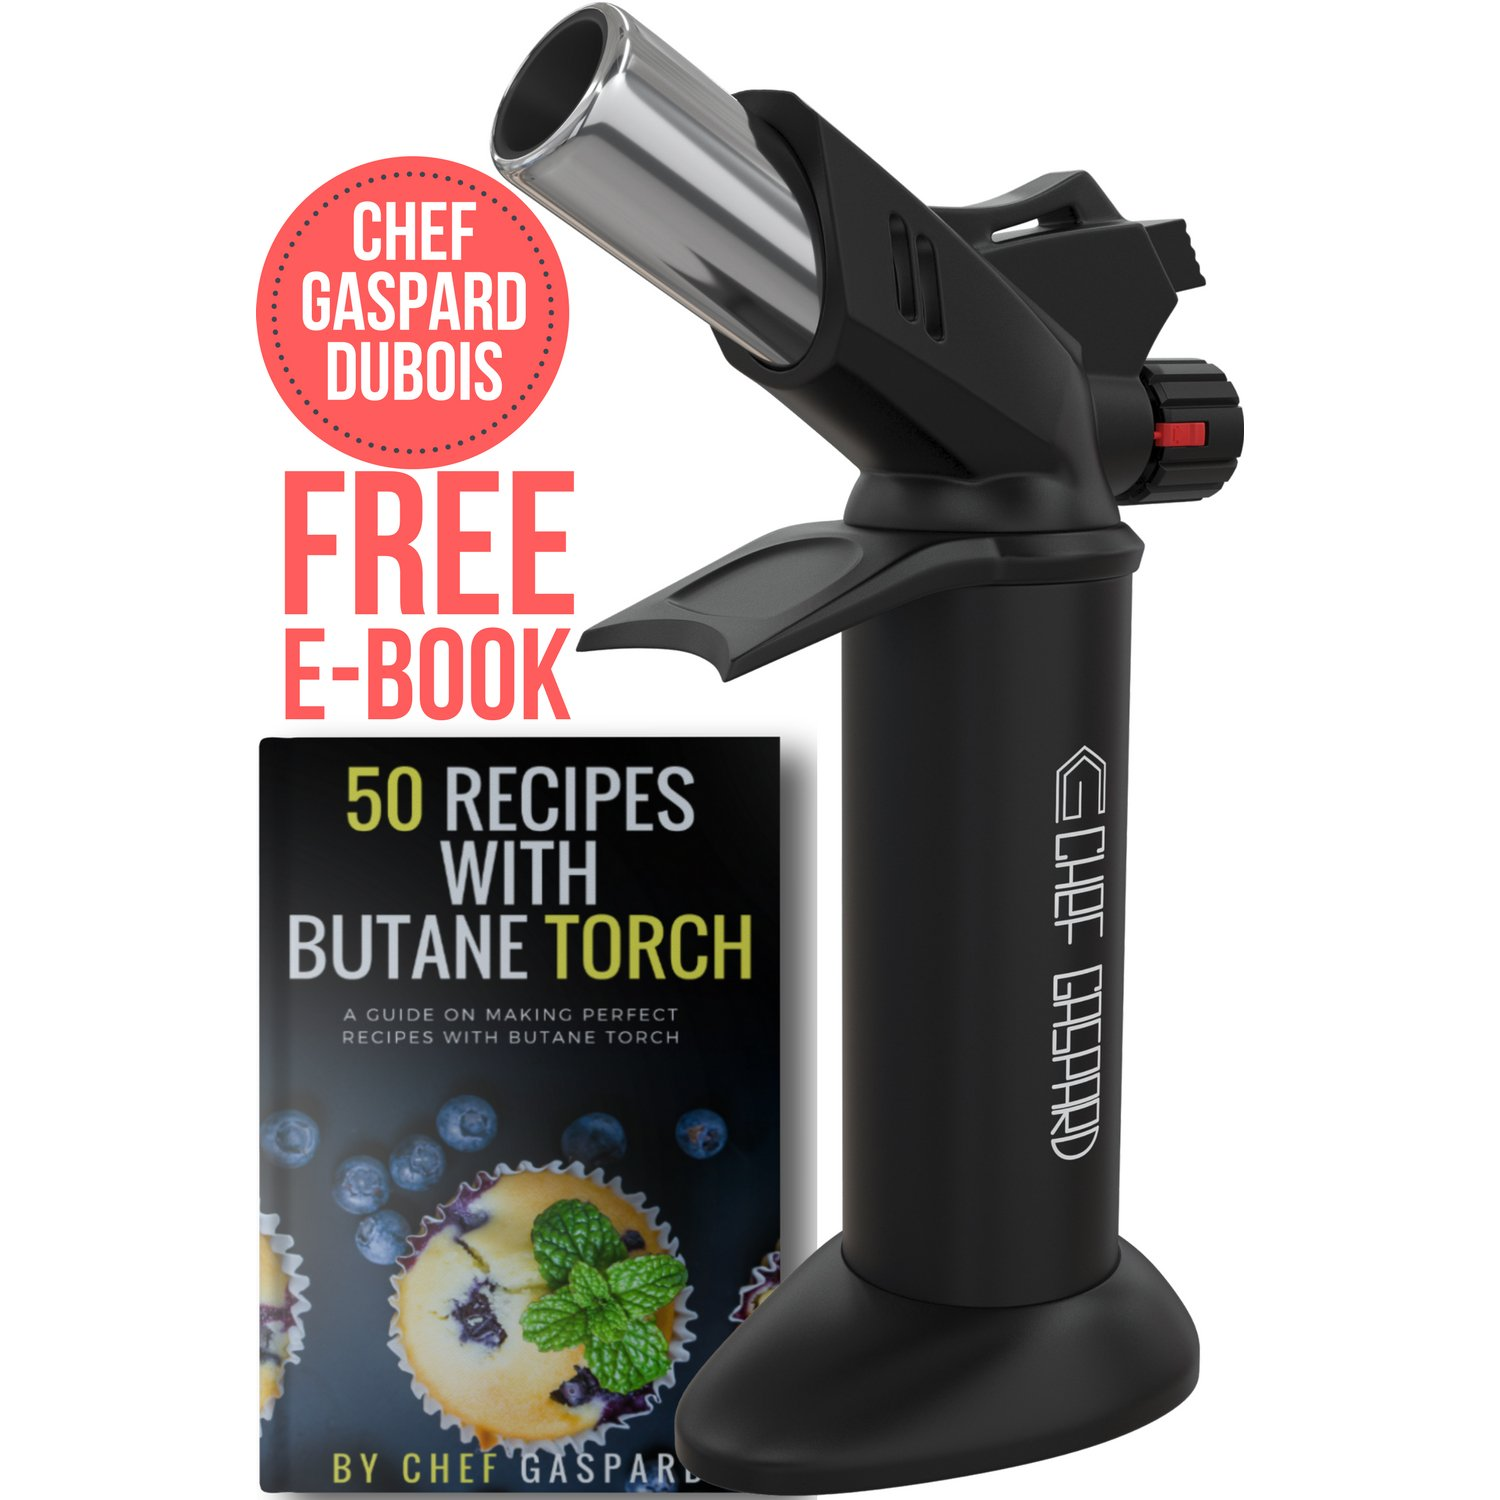 Butane Torch - Culinary Torch - Creme Brulee Torch - Cooking Torch - Blow Torch - Kitchen Chef Torch - Butane Torch Lighter - Blow Torch Kit - Culinary Torch Lighter - Butane Lighter Torch, Black